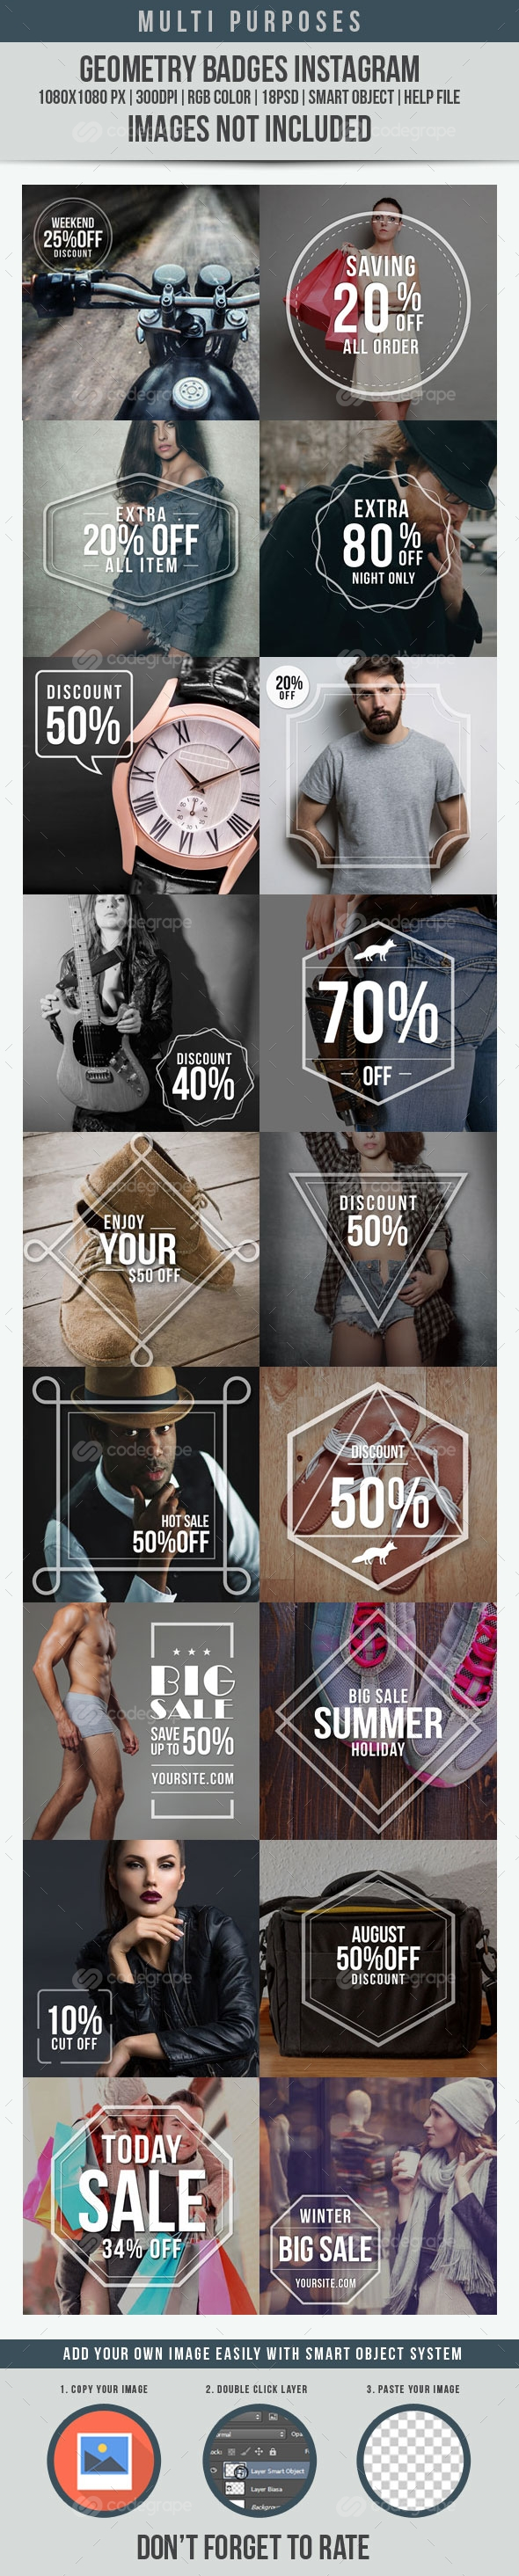 Geometry Badges Instagram Ad